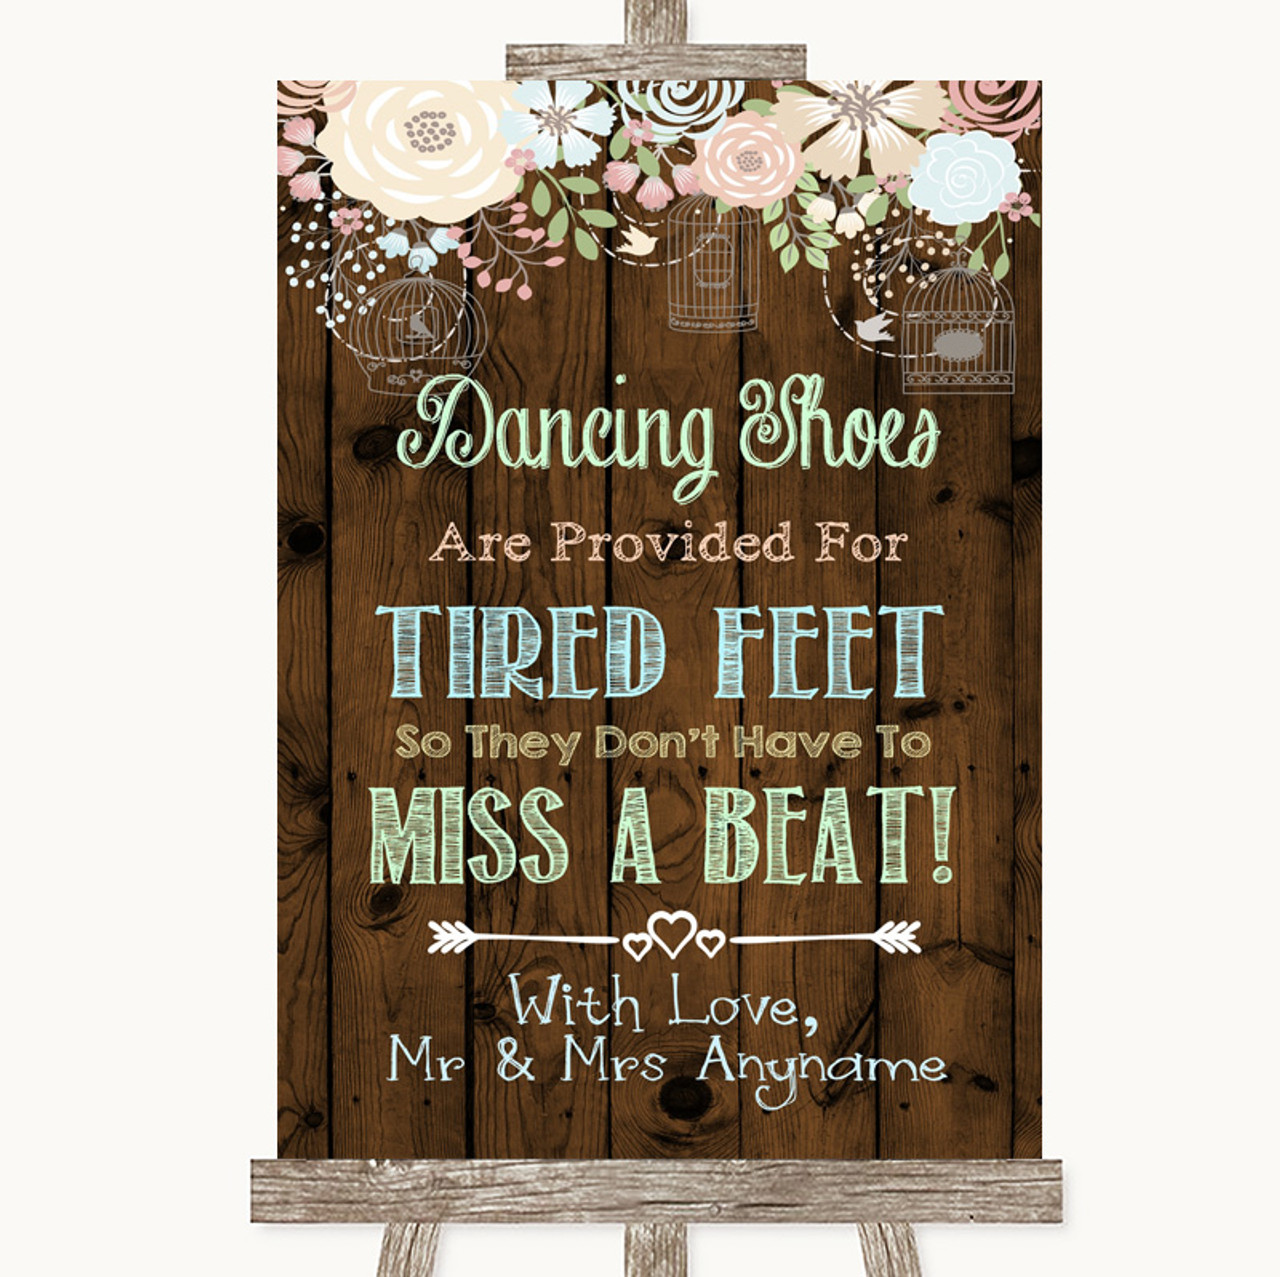 828a6dd78 Rustic Floral Wood Dancing Shoes Flip-Flop Tired Feet Personalised Wedding  Sign - The Card Zoo